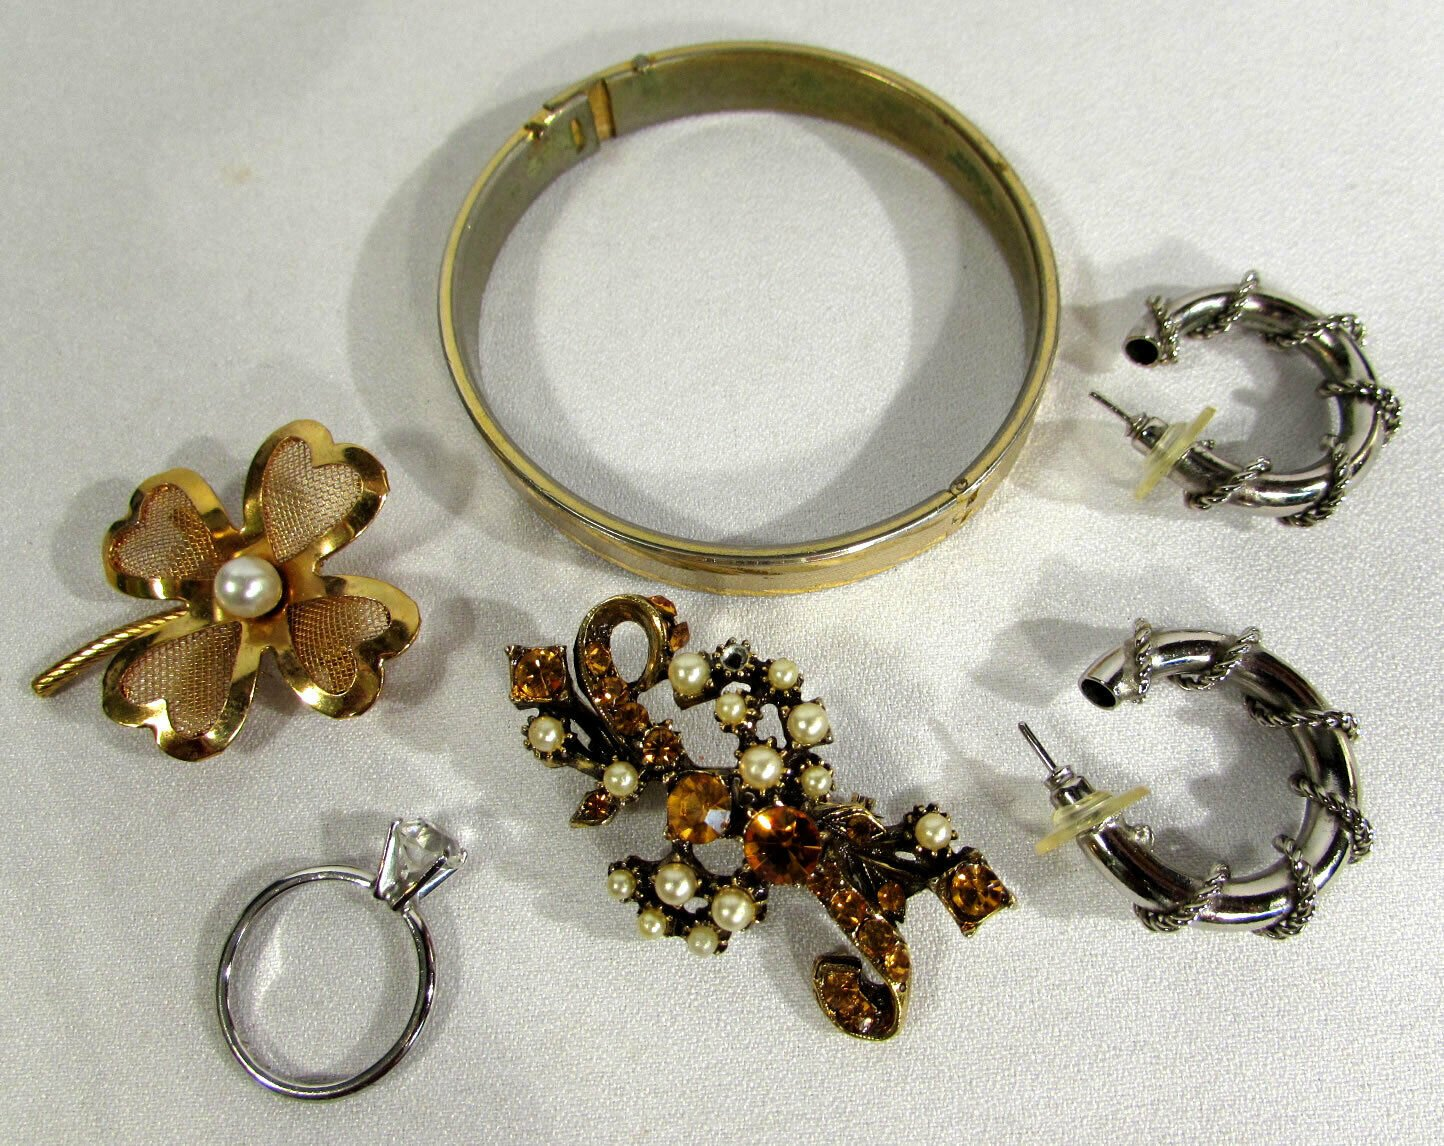 Vintage Mixed Lot Jewelry Bangle Bracelet Brooches Earrings Ring